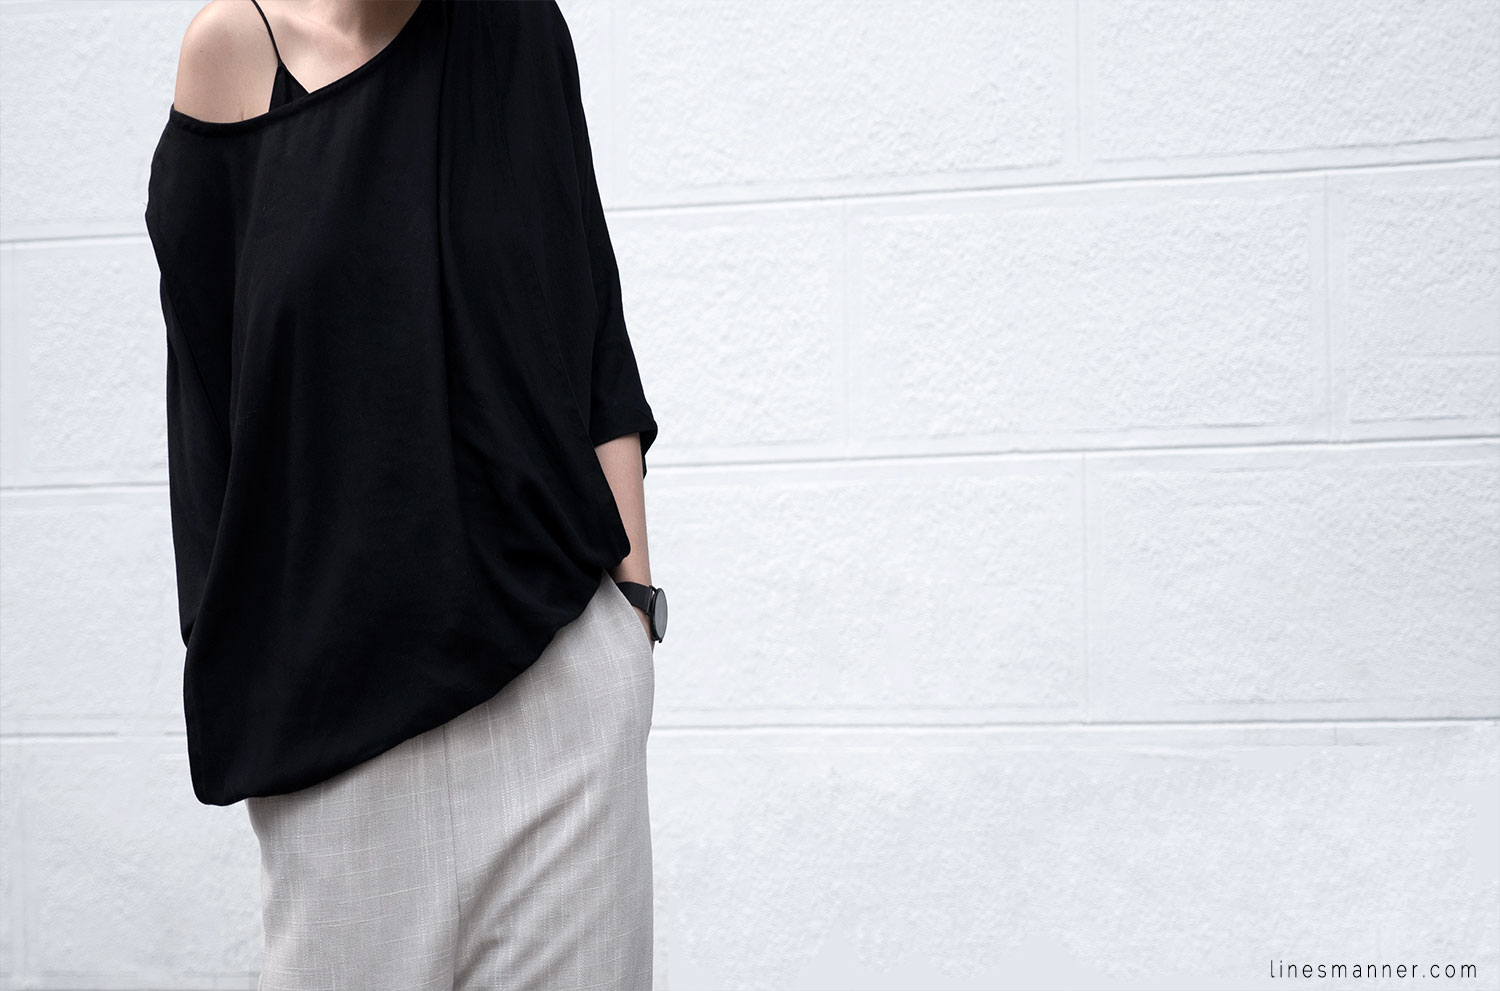 Lines-Manner-Modern-Minimal-Effortless-Casual-Wide_Leg_Culotte-Coidlyn_Wight-Draped-Coton-Linen-Sustainable-Slow_Fashion-Neutrals-Structure-Volume-Fluid-Simplicity-Details-9